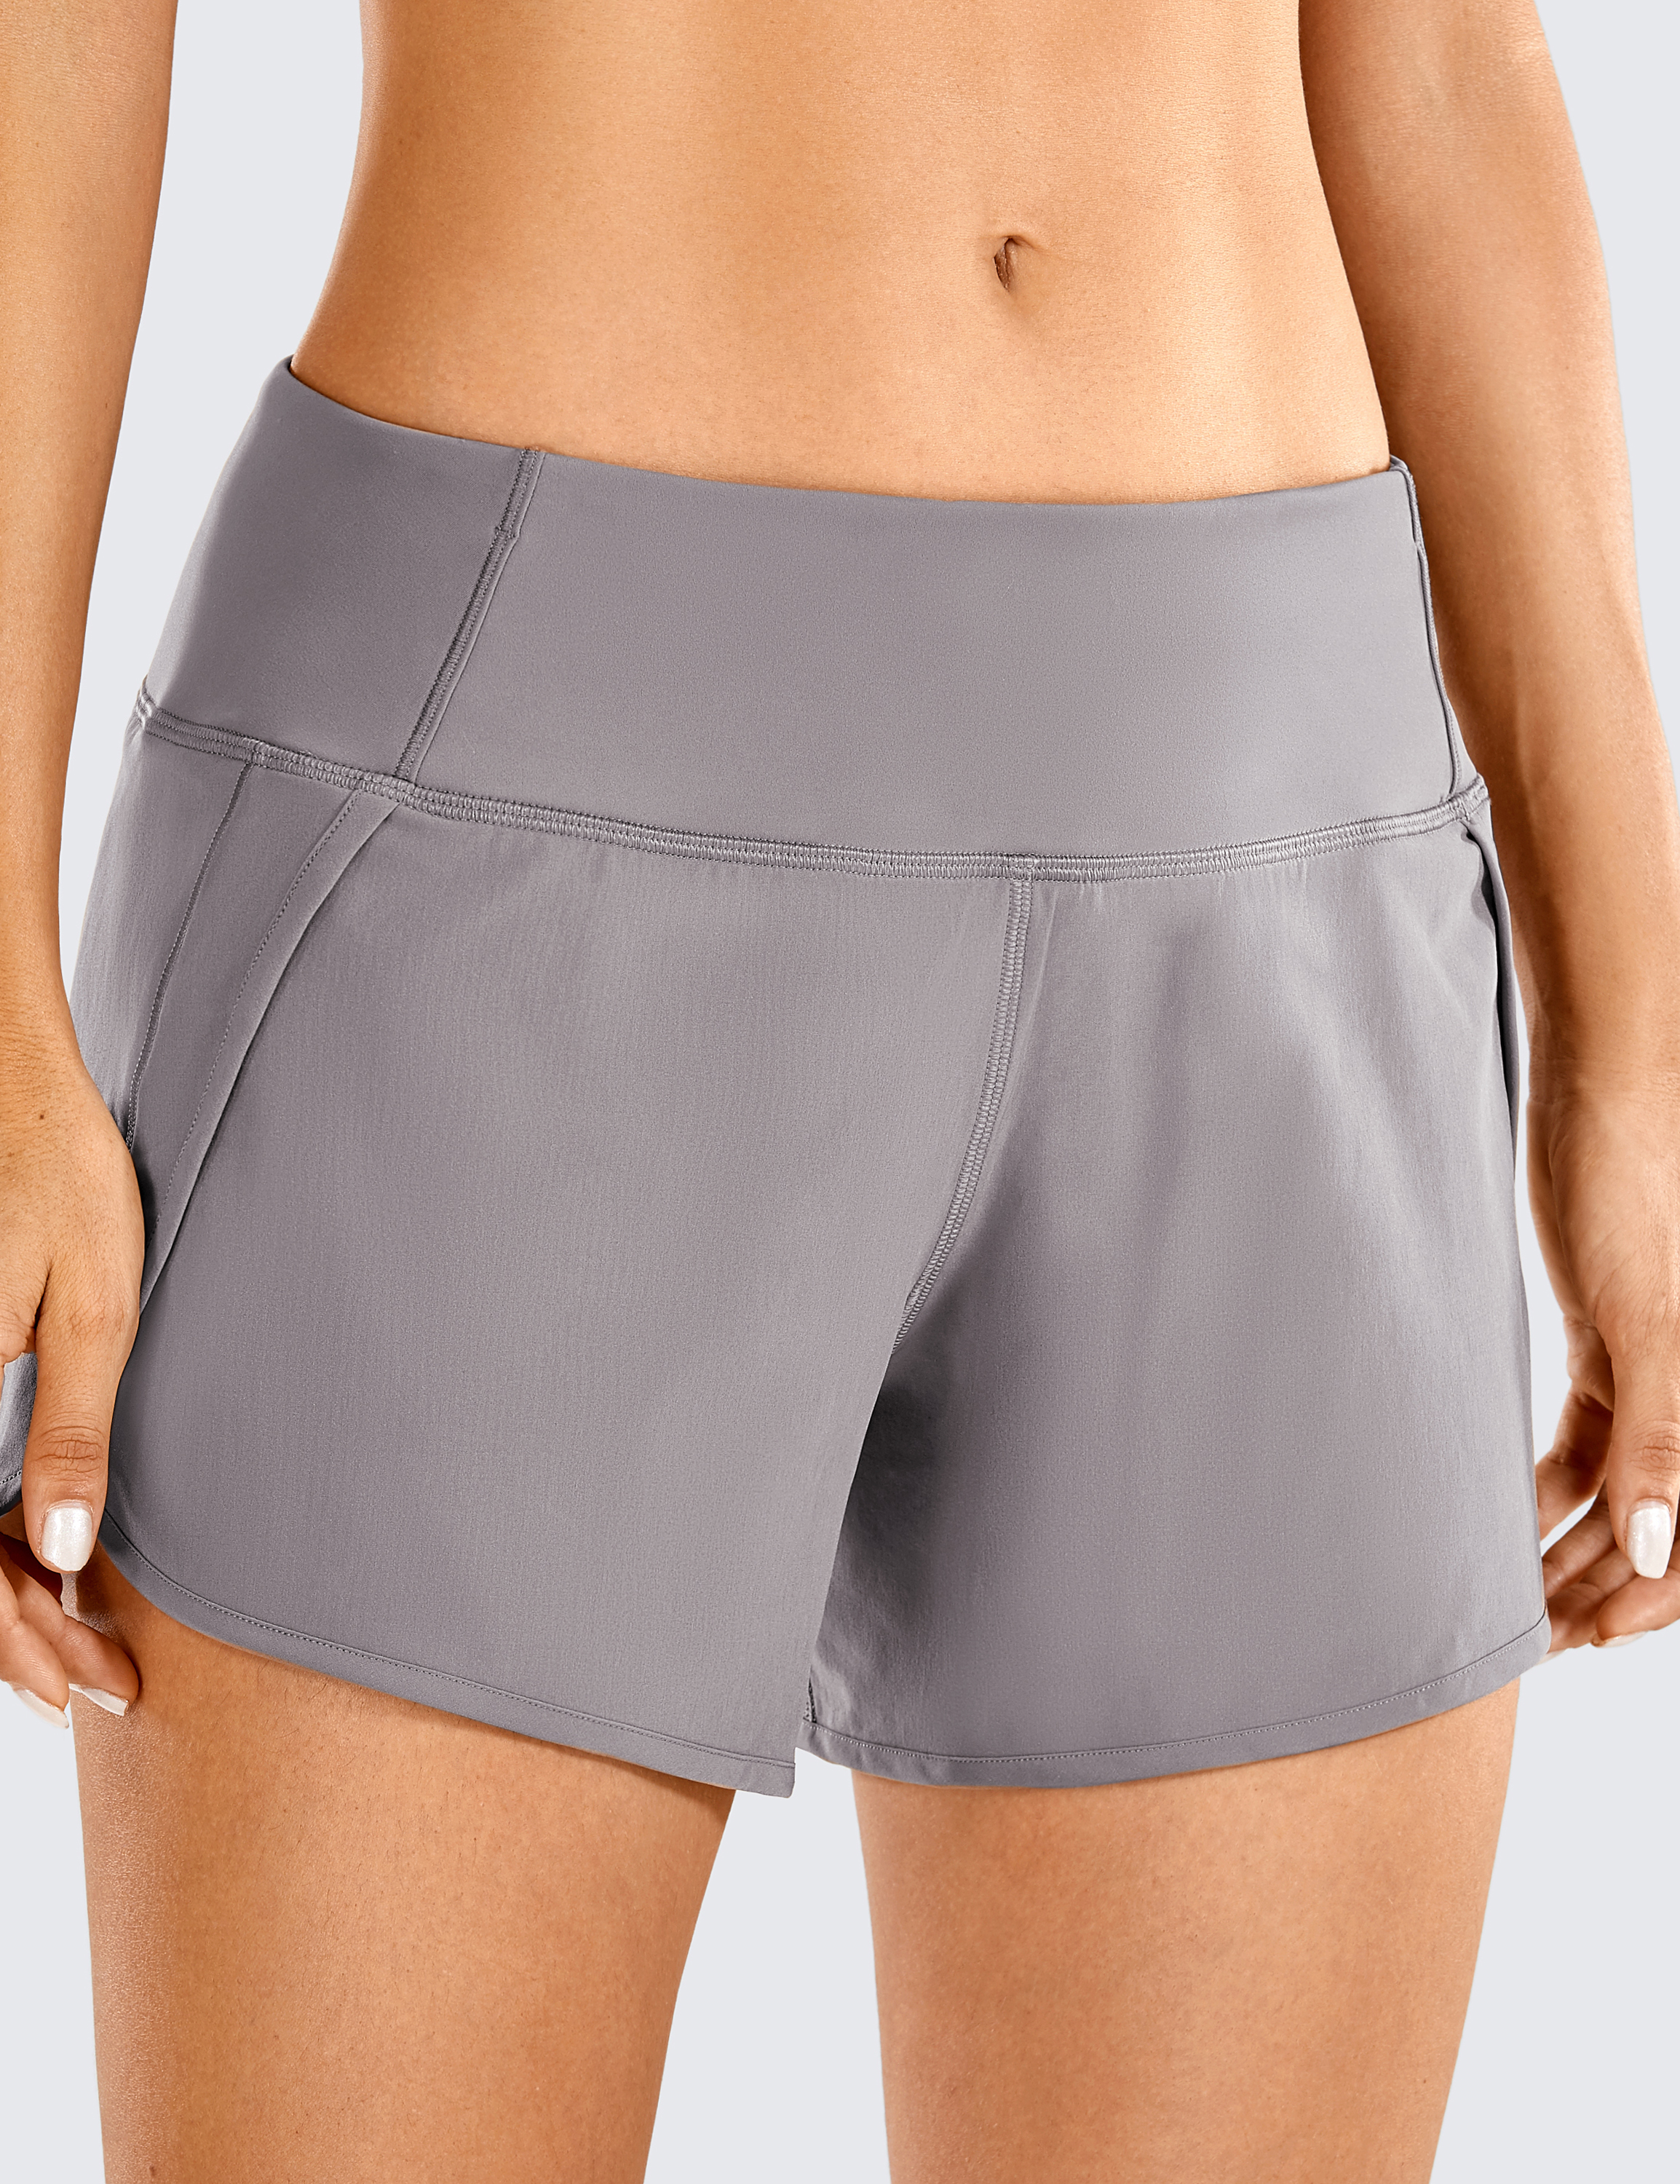 CRZ YOGA Womens Running Workout Shorts with Liner 2 in 1 Athletic Sport Shorts with Zip Pocket-4 inch